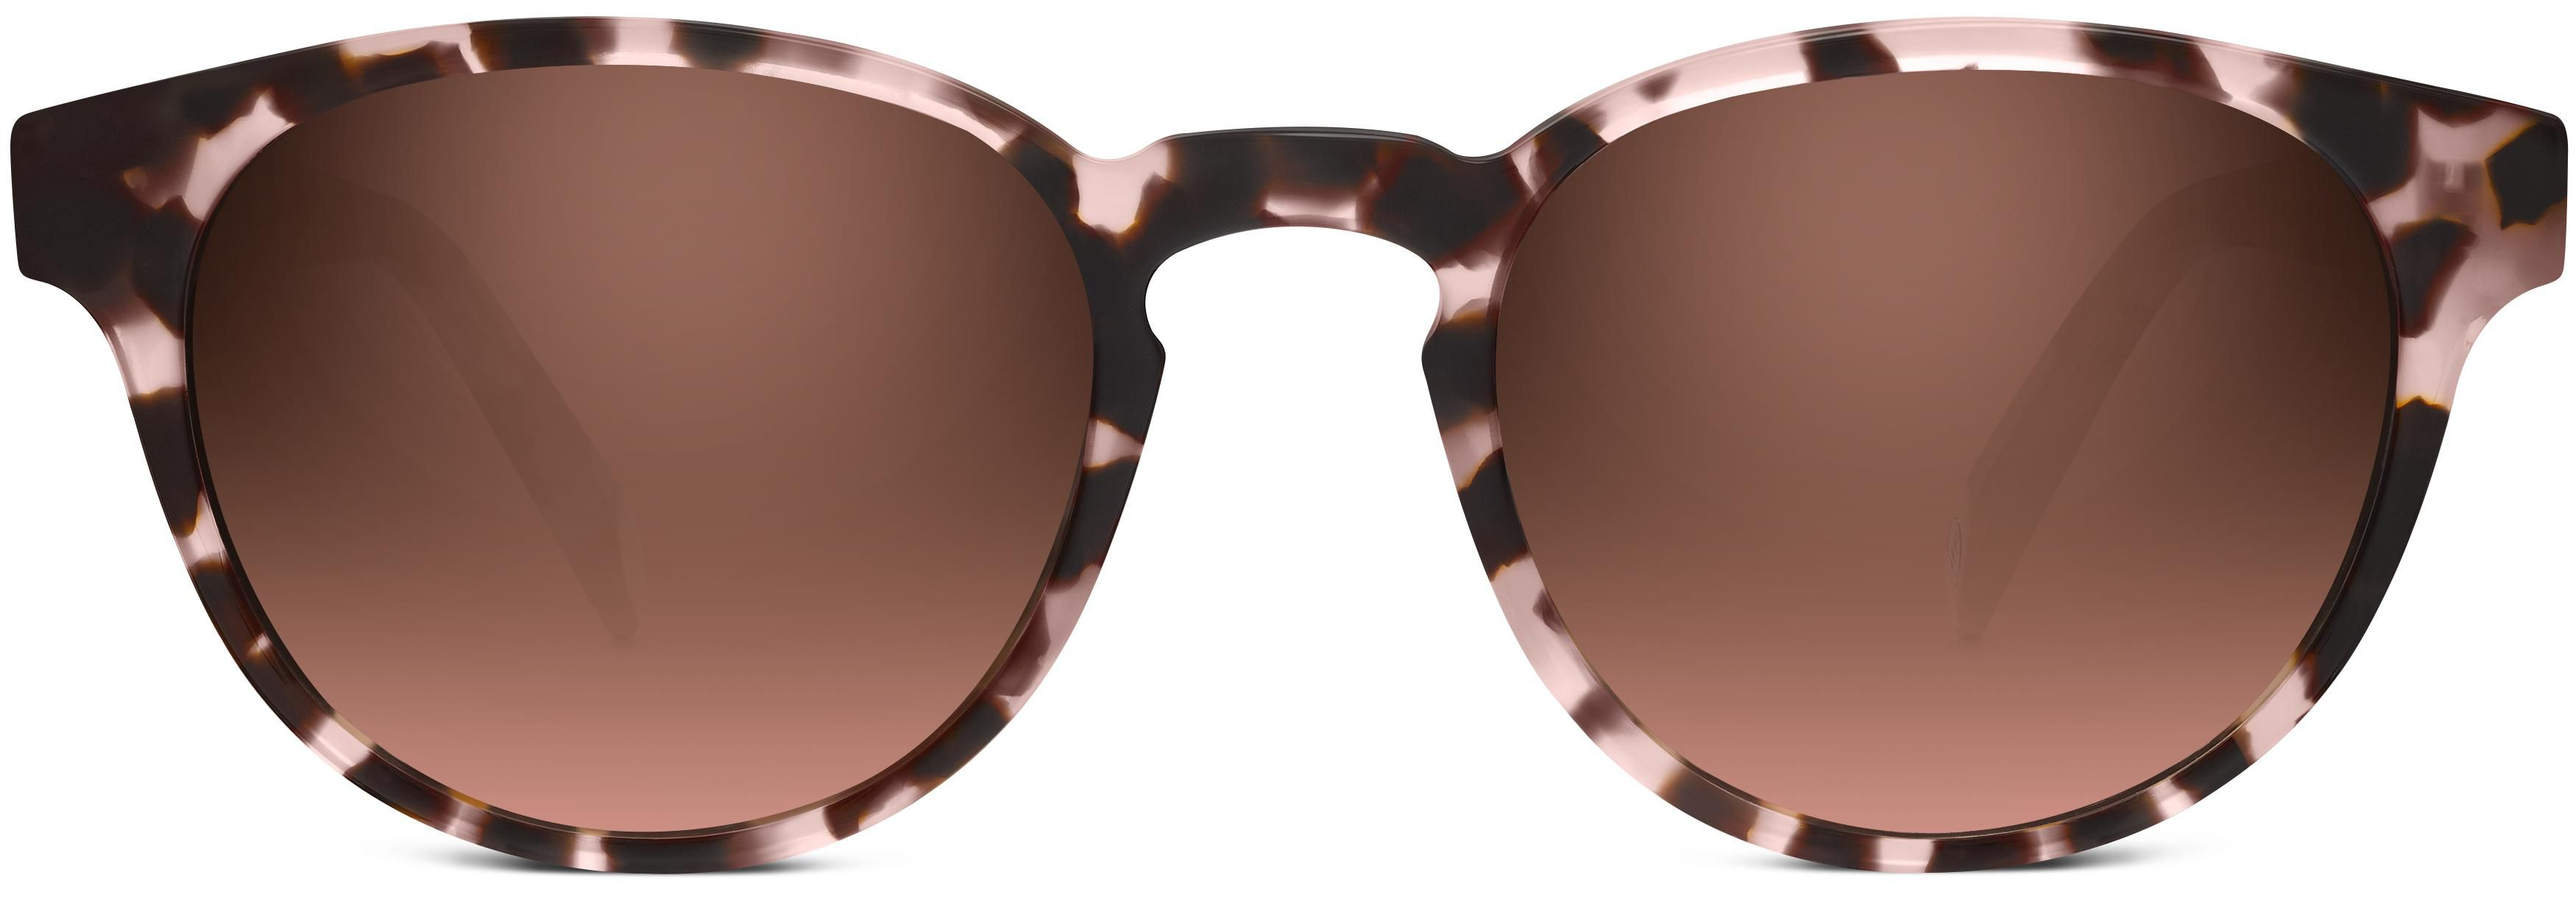 61f3cadb56506 Percey Sunglasses in Petal Tortoise with Flash Reflective Brown Gradient  lenses for Men